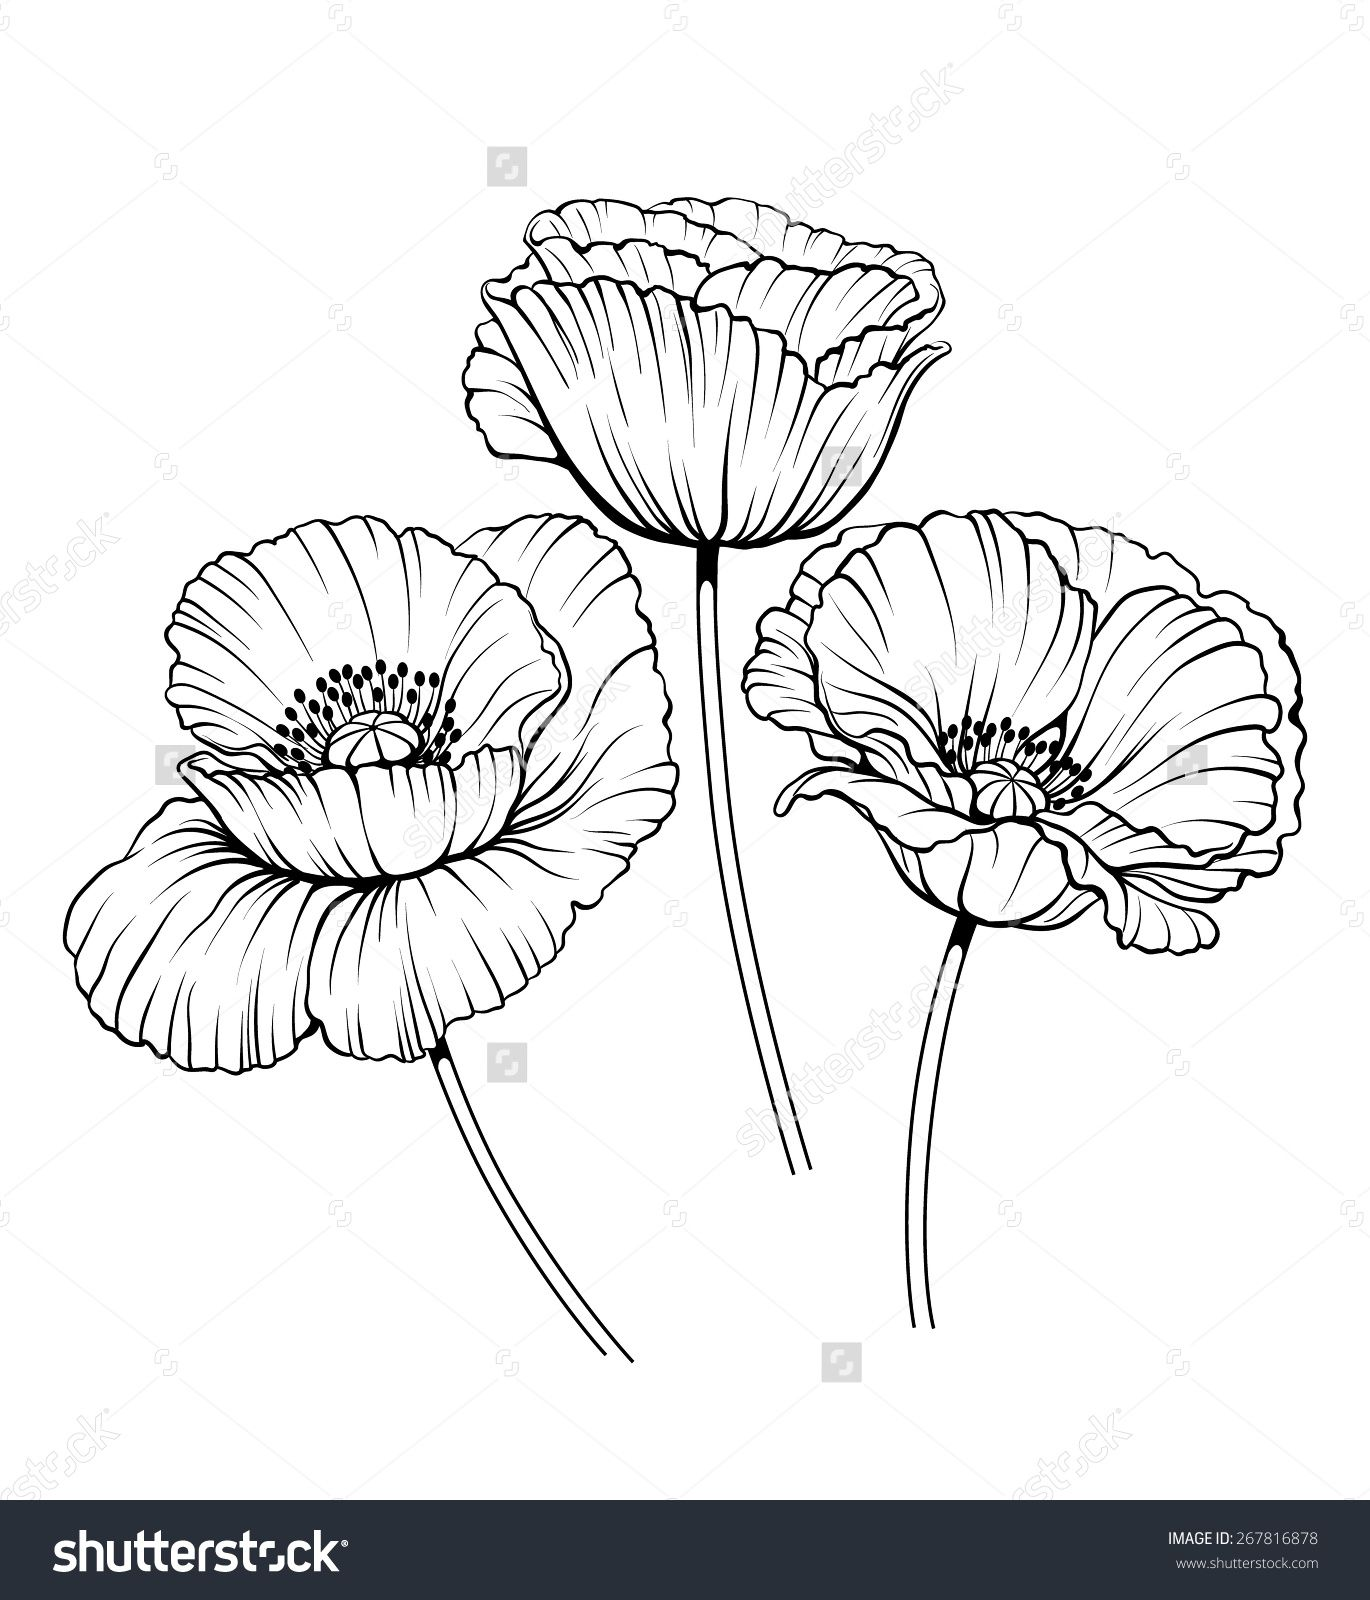 Poppy Line Drawing Tattoo : Stock vector black and white illustration of a poppy